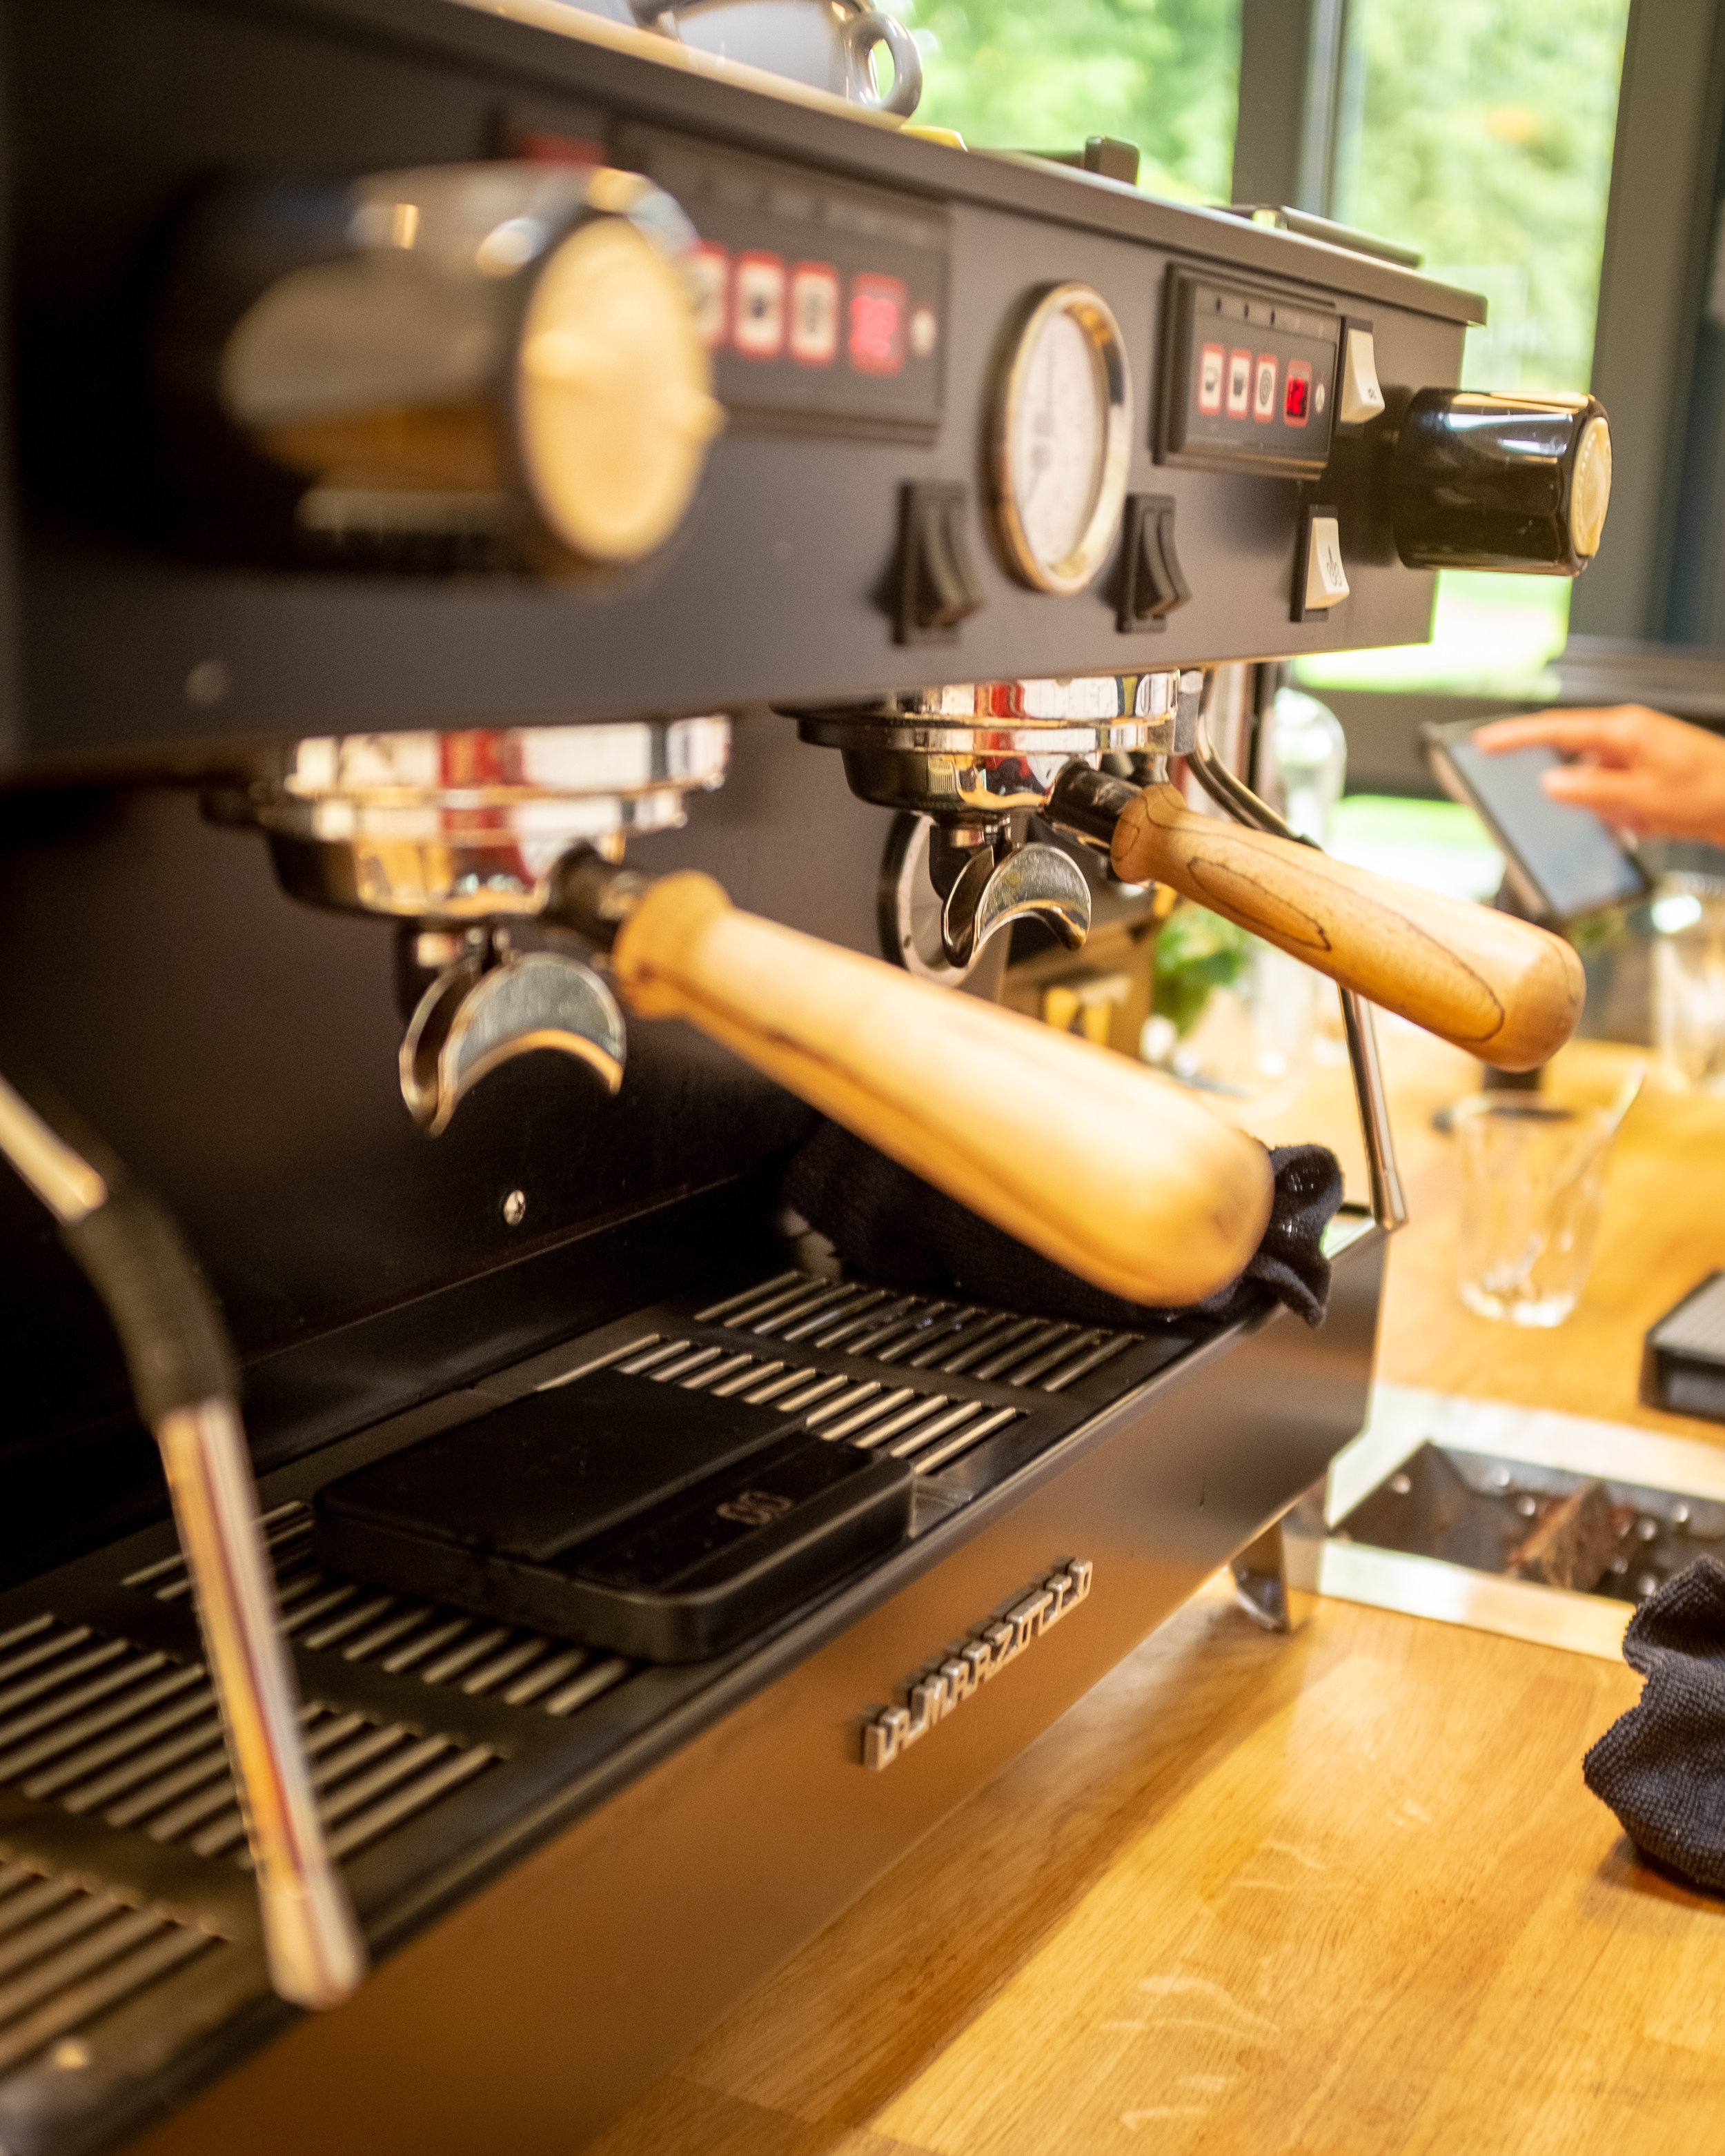 COFFEE - We use locally roast, single origin coffee beans. Our speciality coffee is made using tried and tested brewing fundamentals with the best equipment and the estate's filtered spring water from the Pentland Hills.